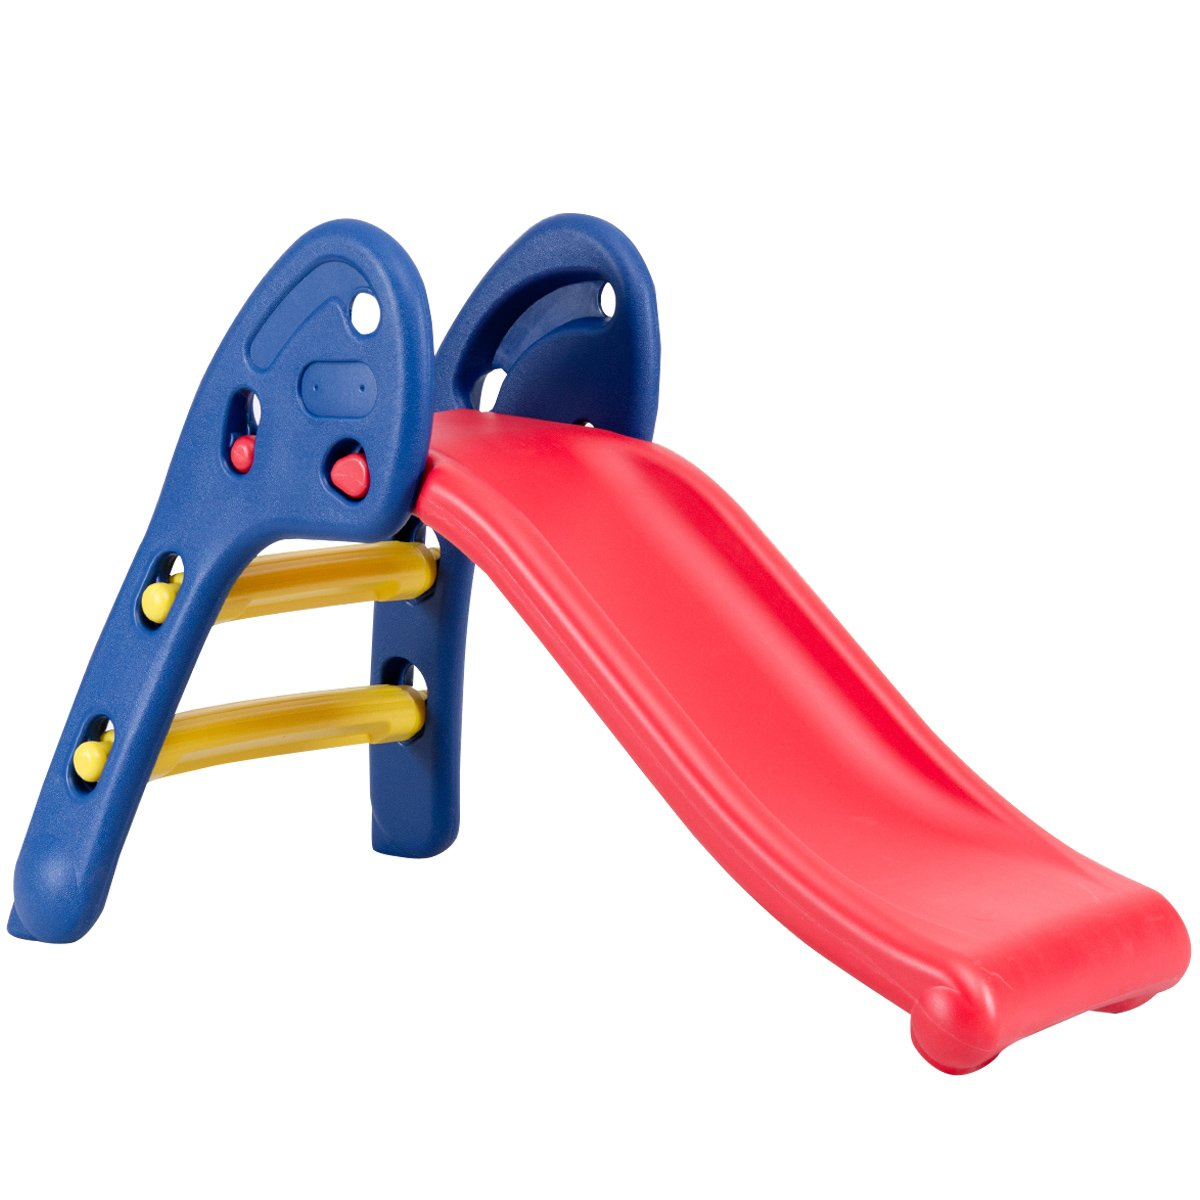 Costzon Folding Slide, Indoor First Slide Plastic Play Slide Climber for Kids (Round Rail)